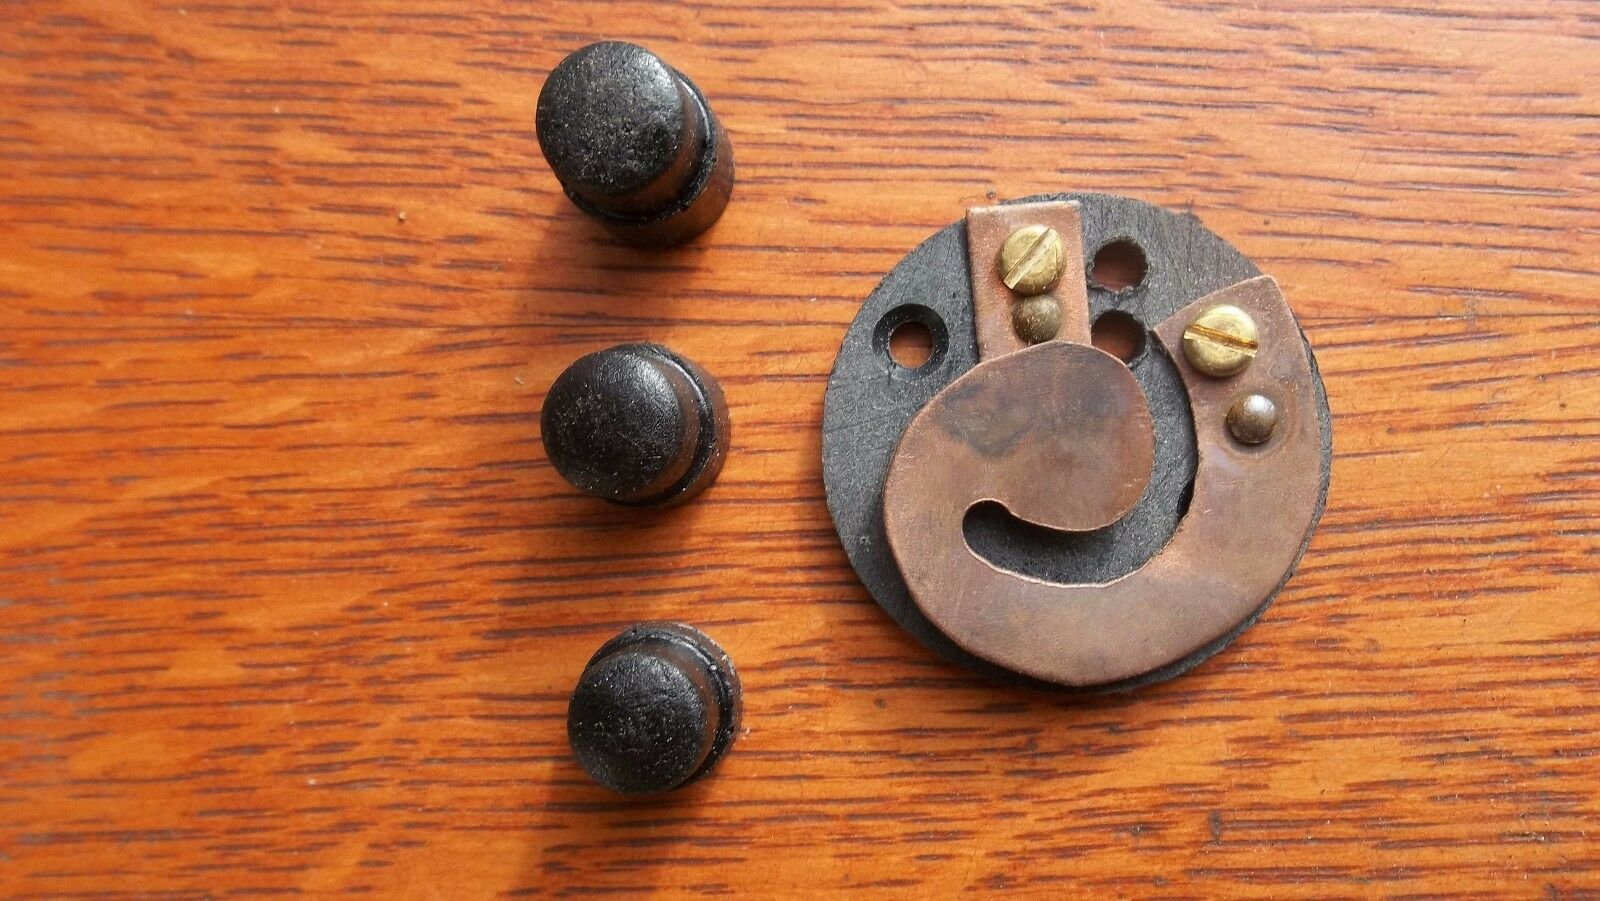 New Replacement Push Buttons & Contacts for Antique Doorbell Buttons - 3 Depths